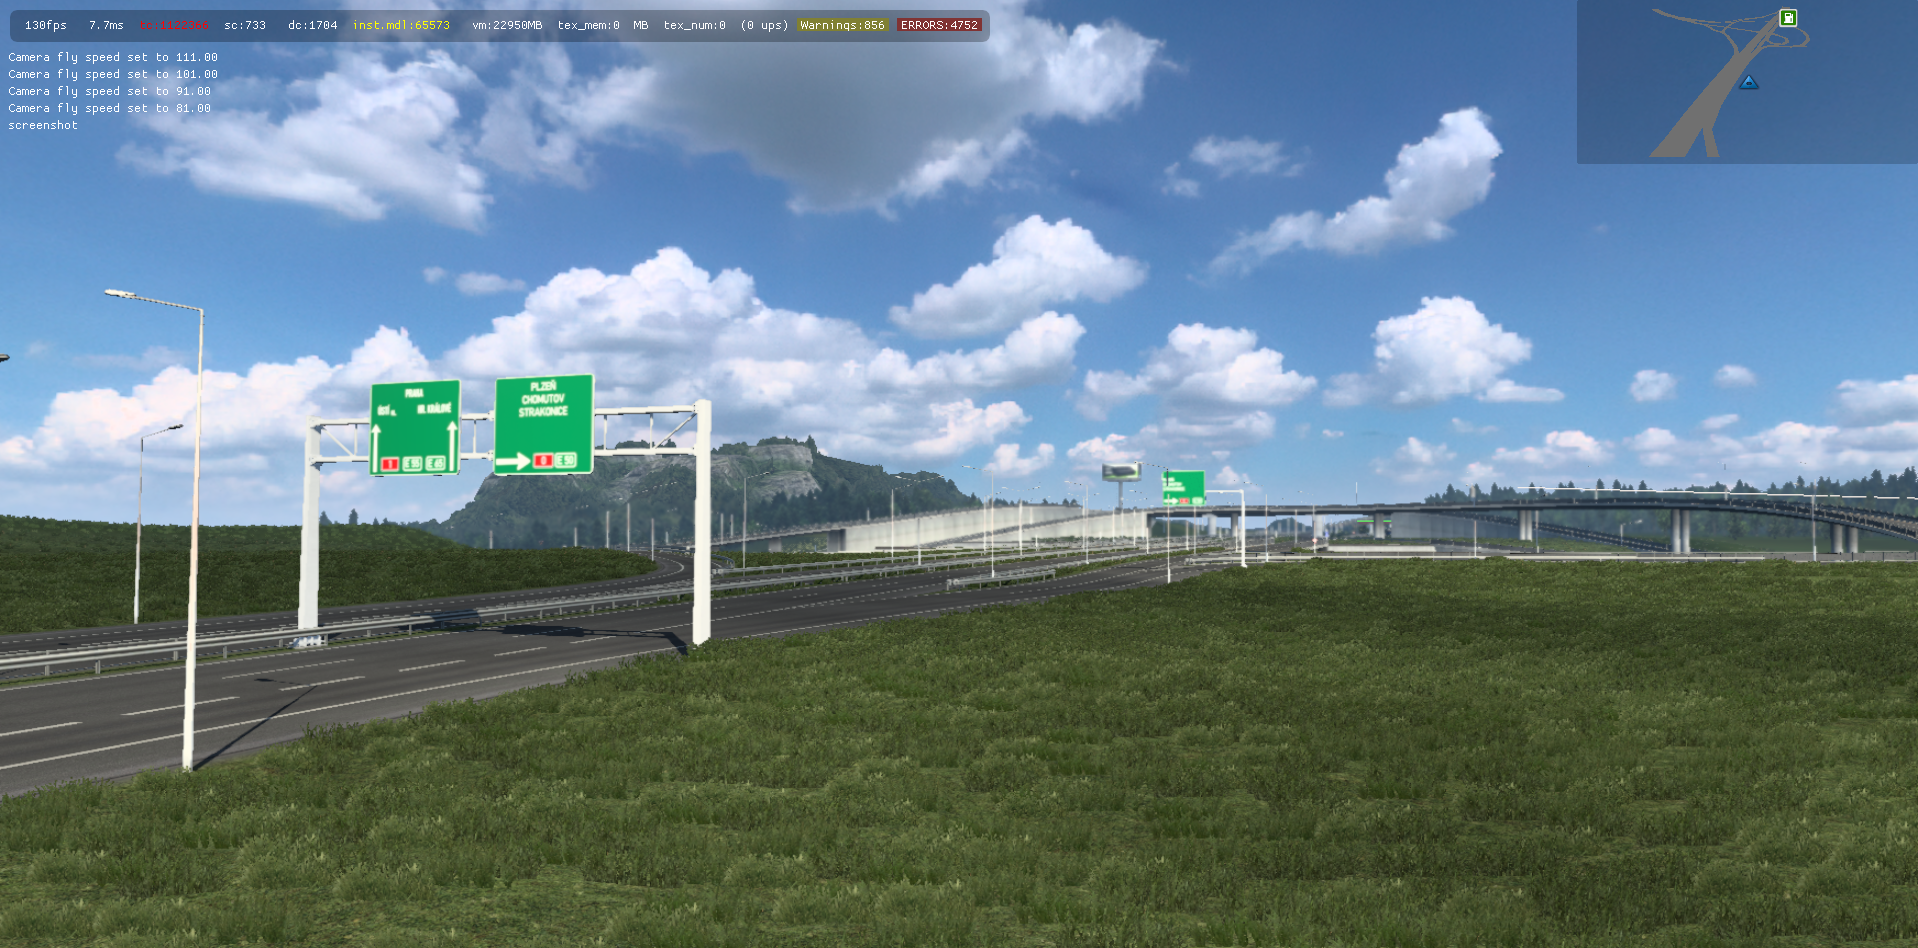 ets2_20210622_214904_00.png